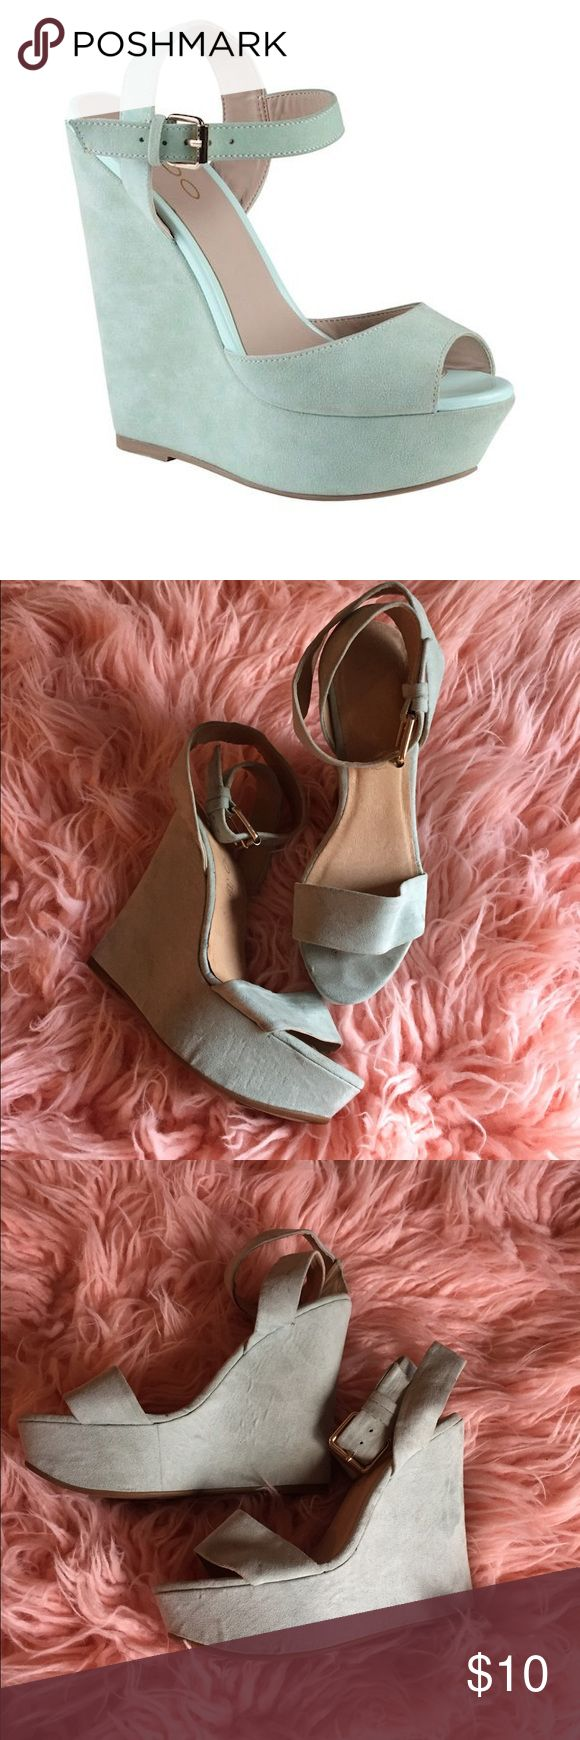 Aldo Cybil Mint Wedge Platform Heels Material: Suede. Sole: Rubber. These playful wedges are both comfortable and trendy. Wedge platform. Ankle strap. Peep toe. Heel height: 5.25 In. Platform height: 1.5 In. Worn a few times. No box. Aldo Shoes